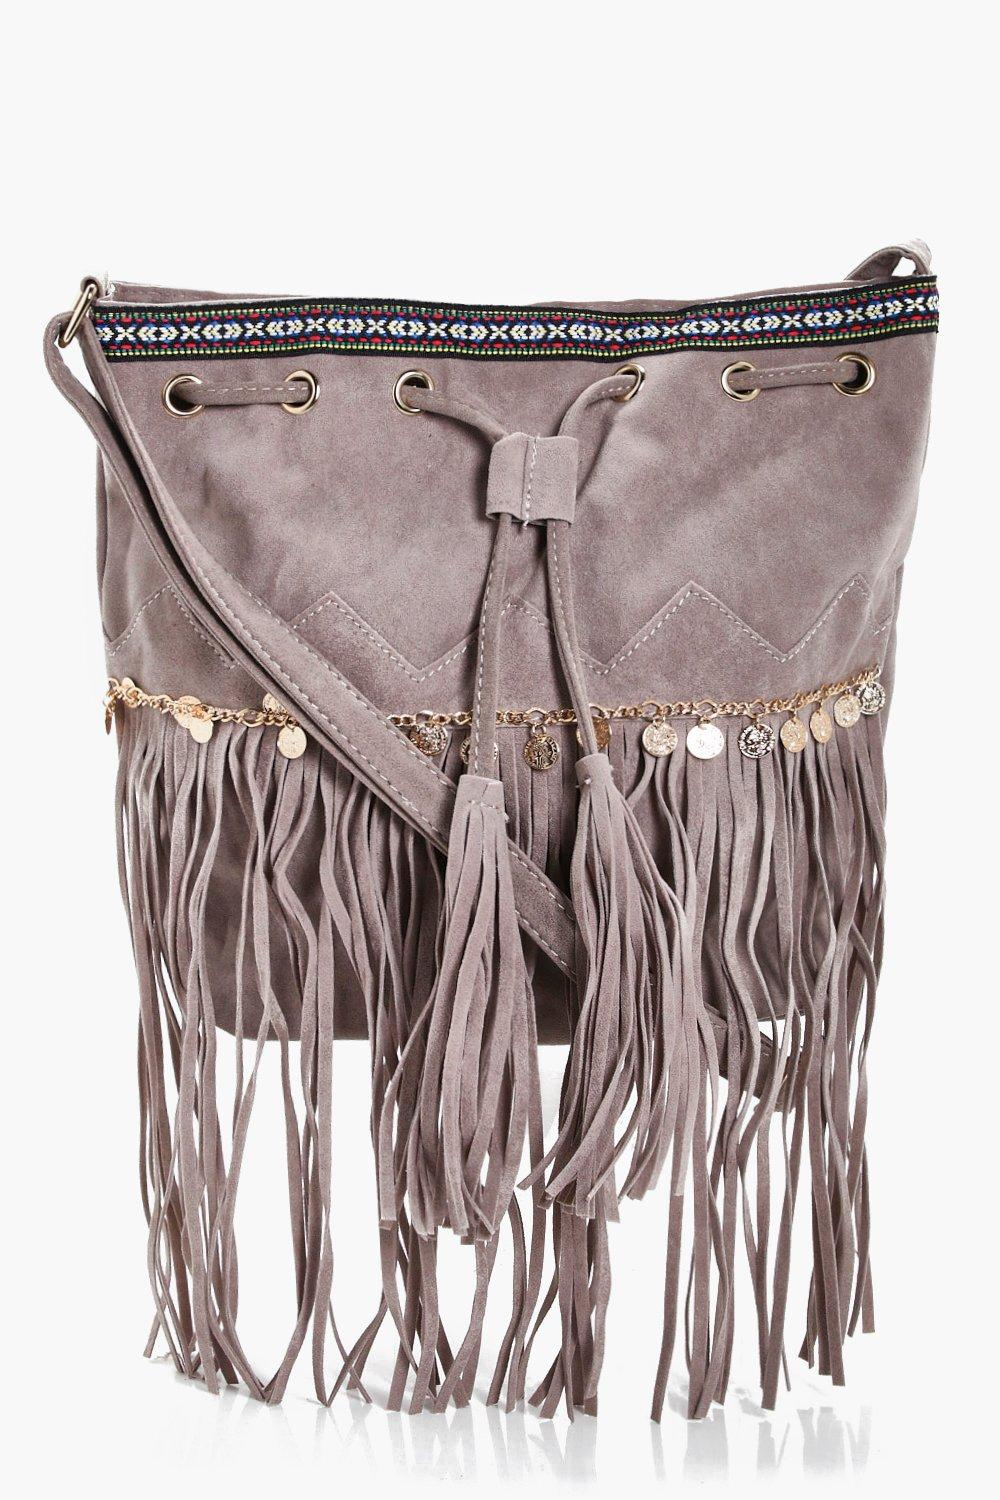 Aztec Coin Trim Tassel Buckle Bag - taupe - Katie